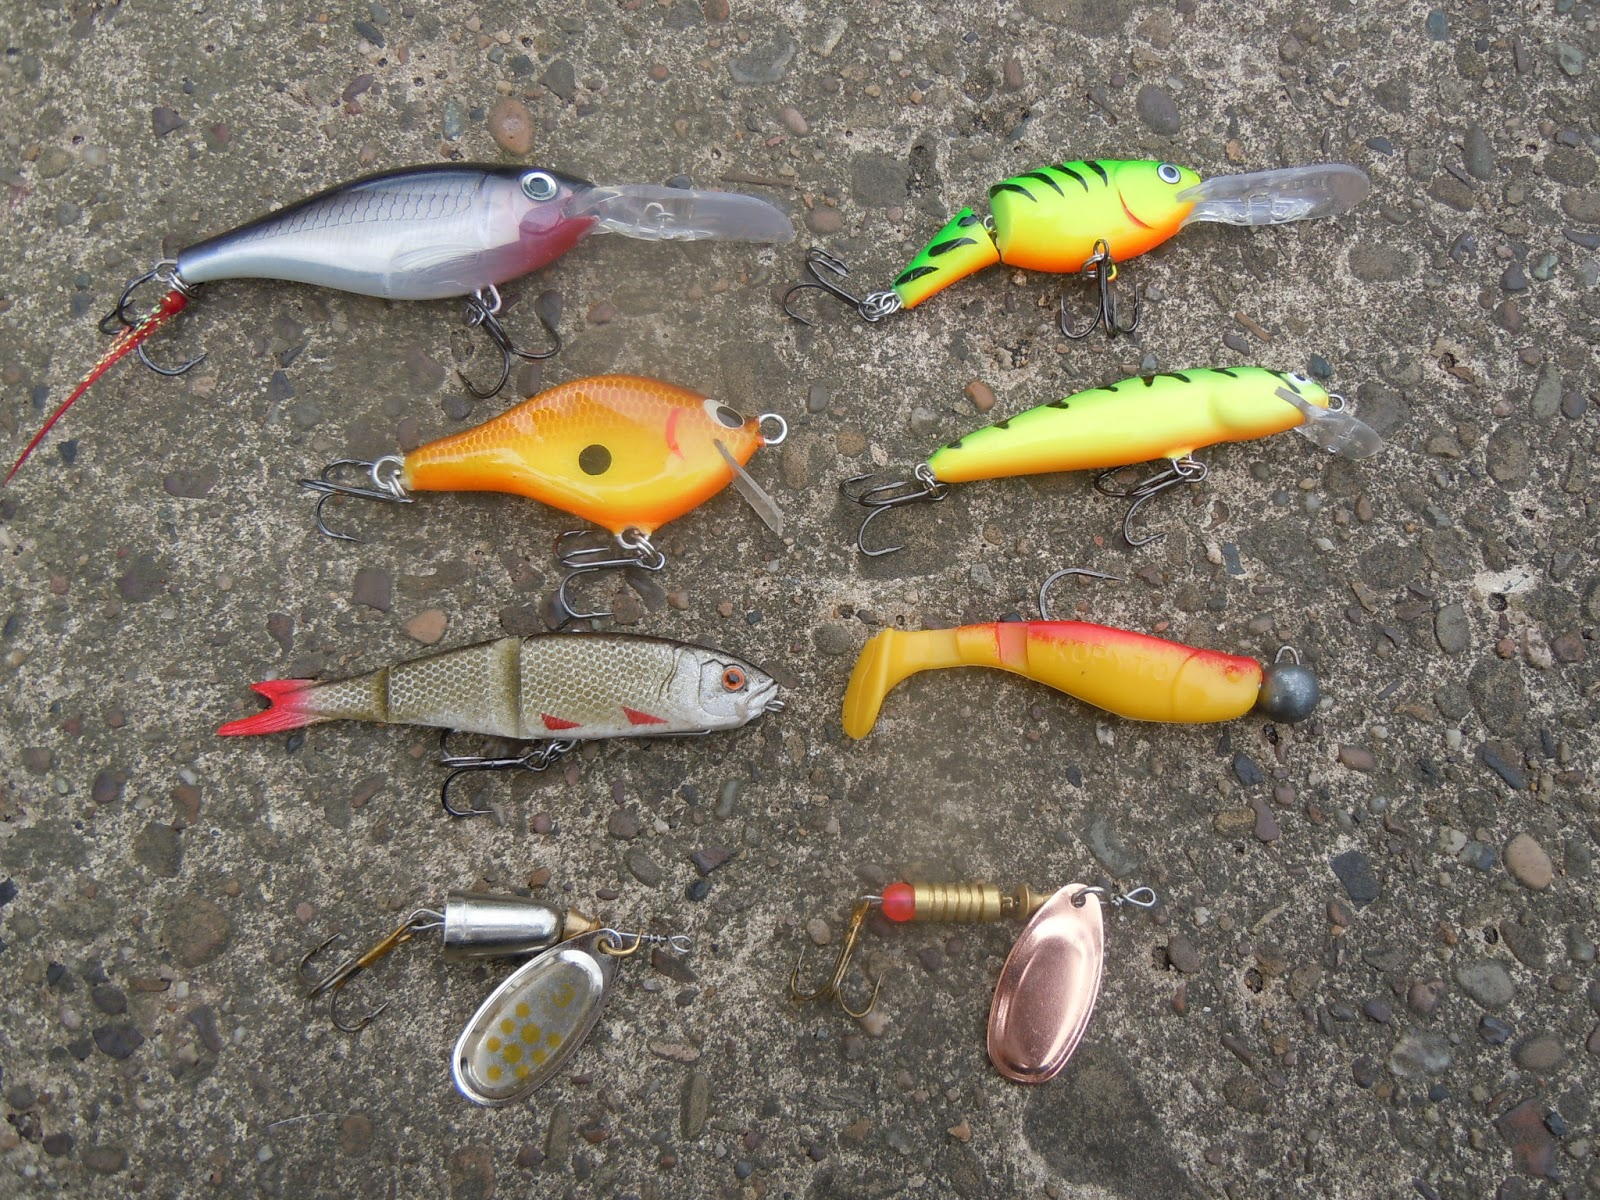 river piker: new to lure fishing? - the casual lure anglers guide, Fly Fishing Bait